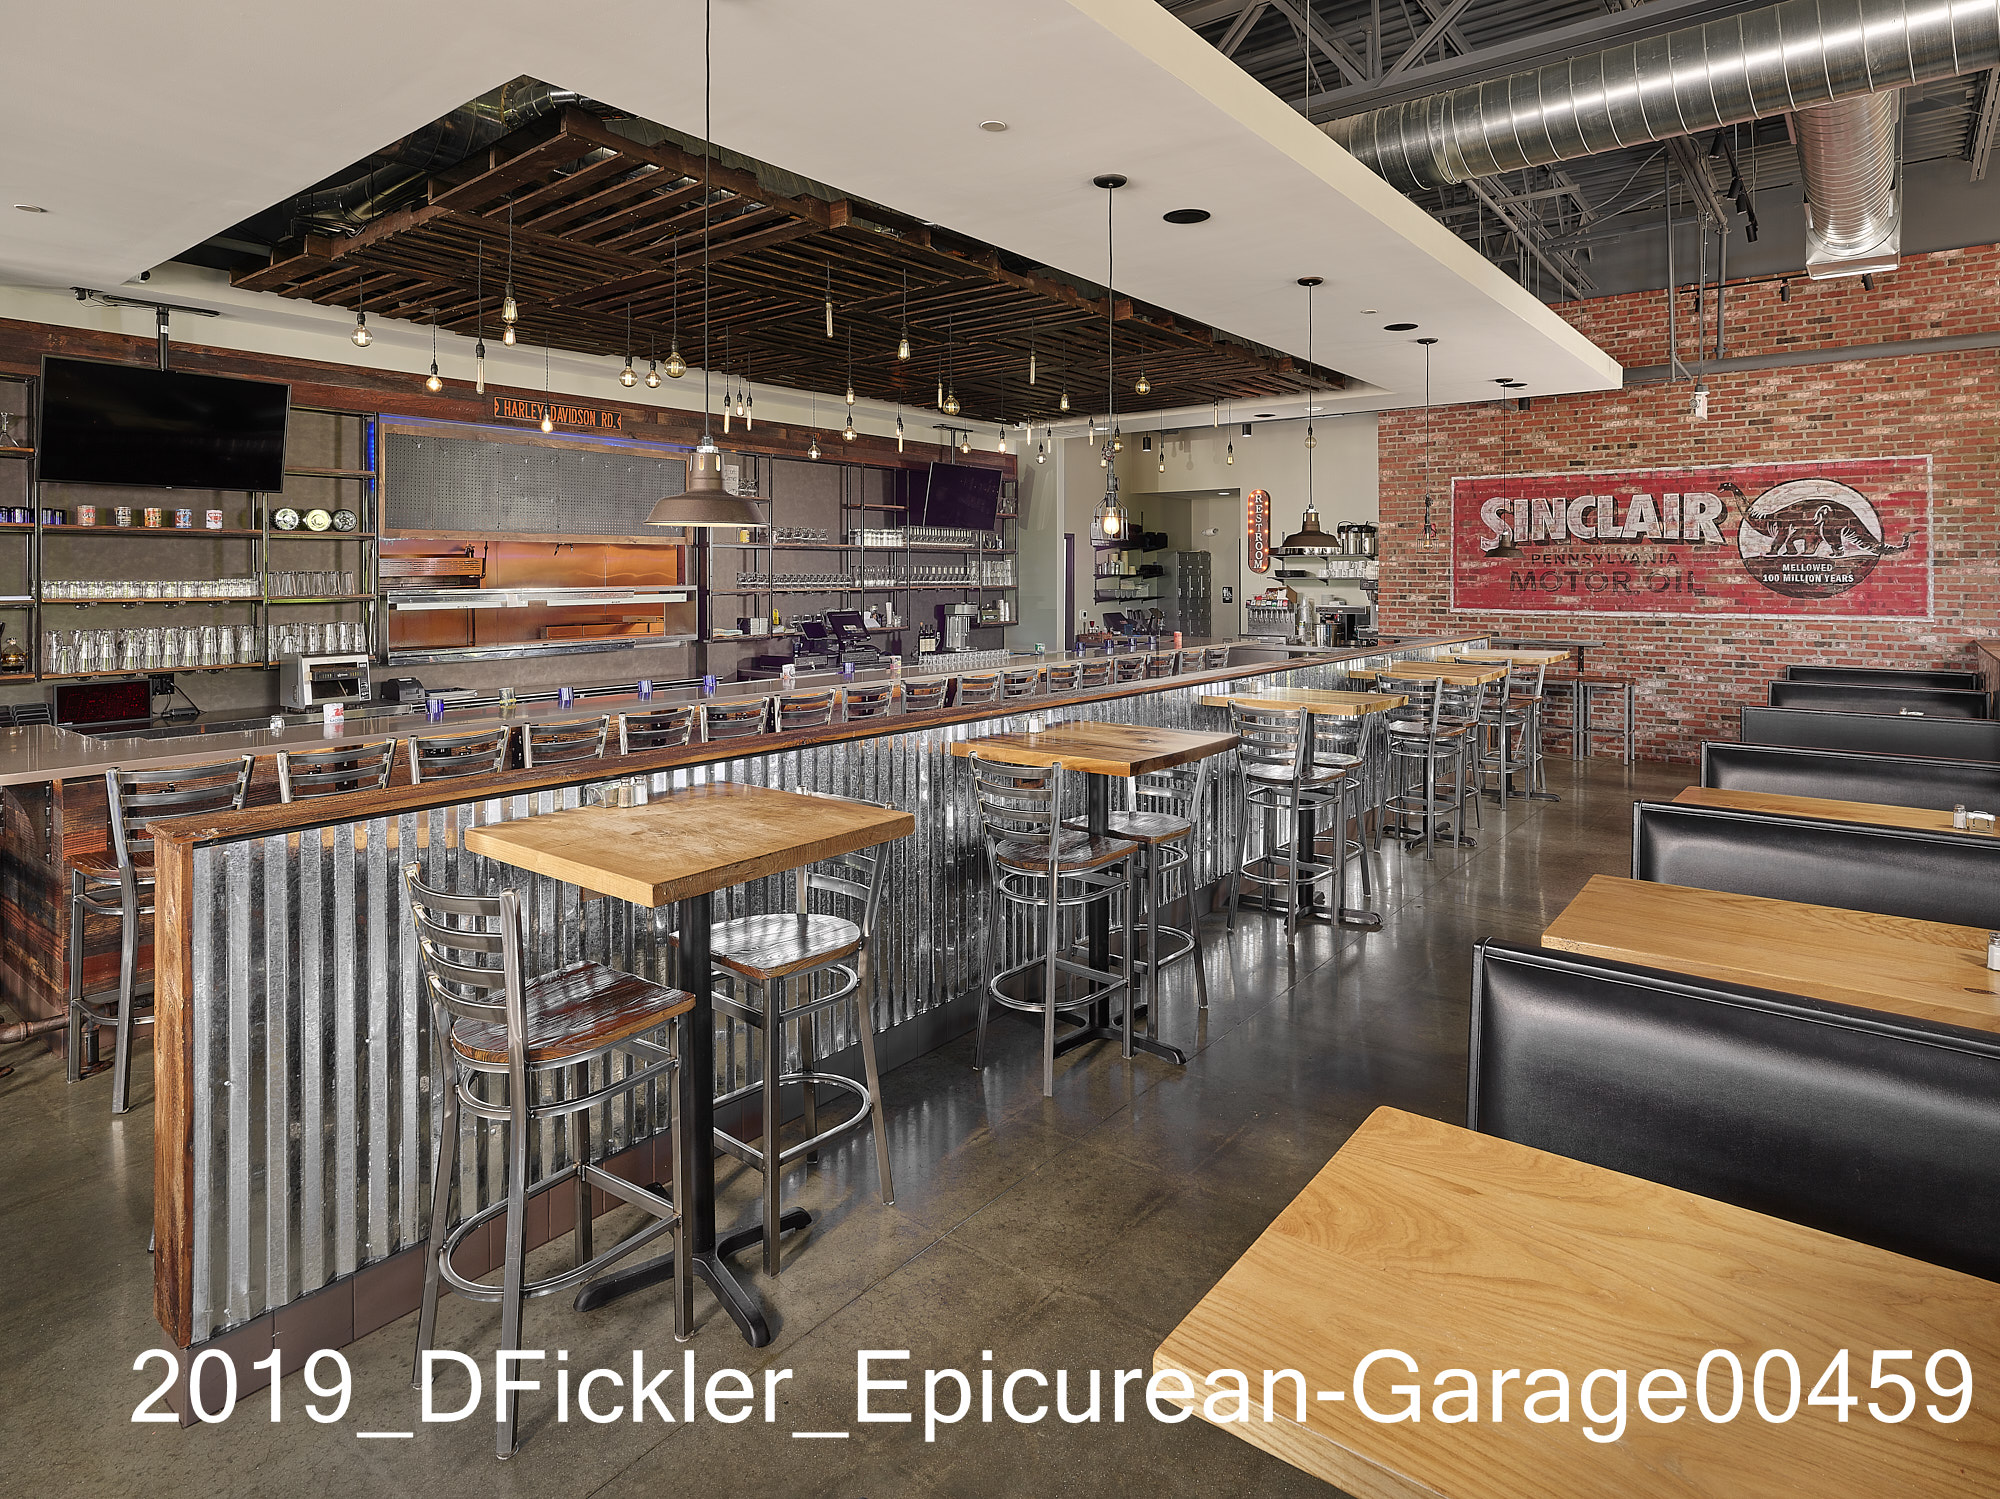 2019_DFickler_Epicurean-Garage00459.jpg